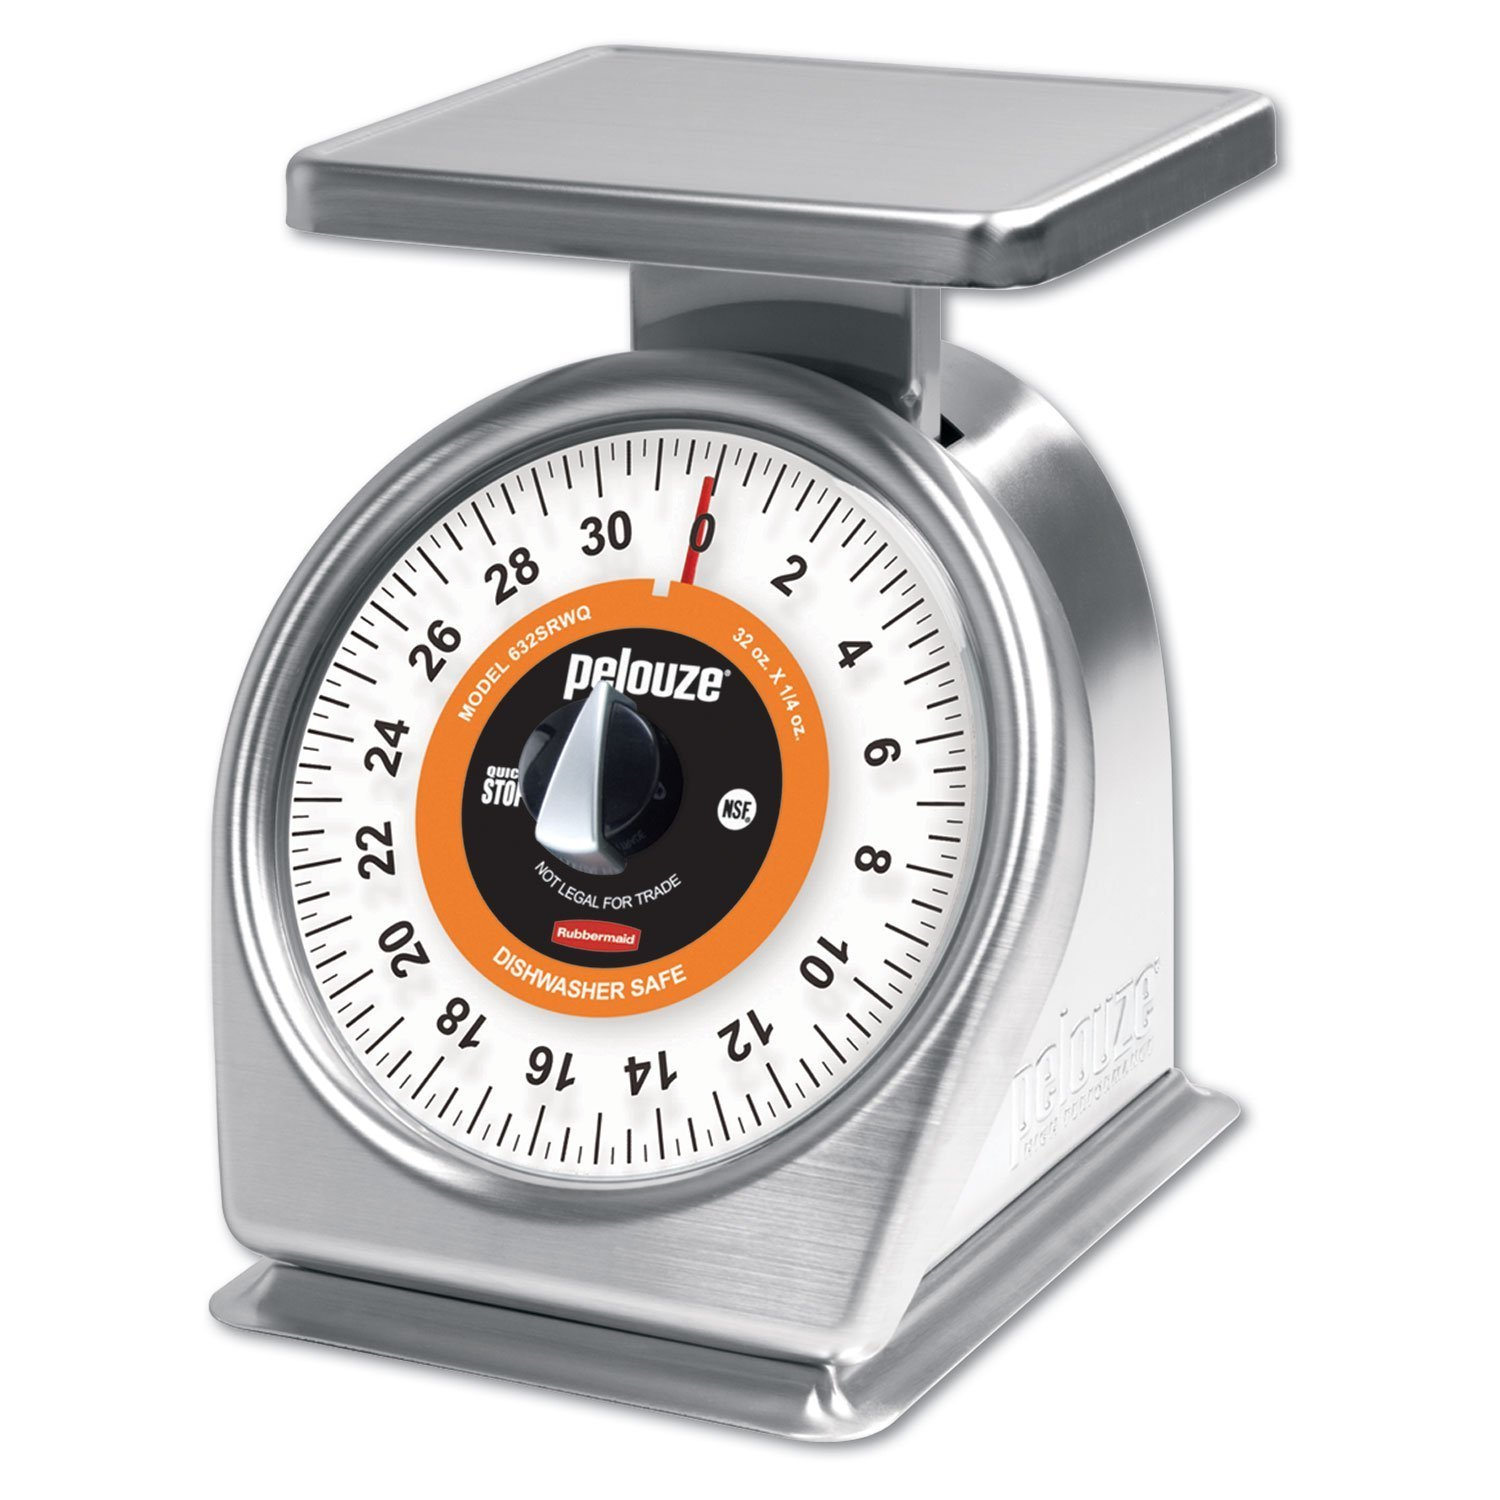 Rubbermaid Commercial Products FG632SRWQ Stainless Steel Food Service Mechanical Portion Control Scale with Quick-Stop, 2 lb. by Rubbermaid Commercial Products